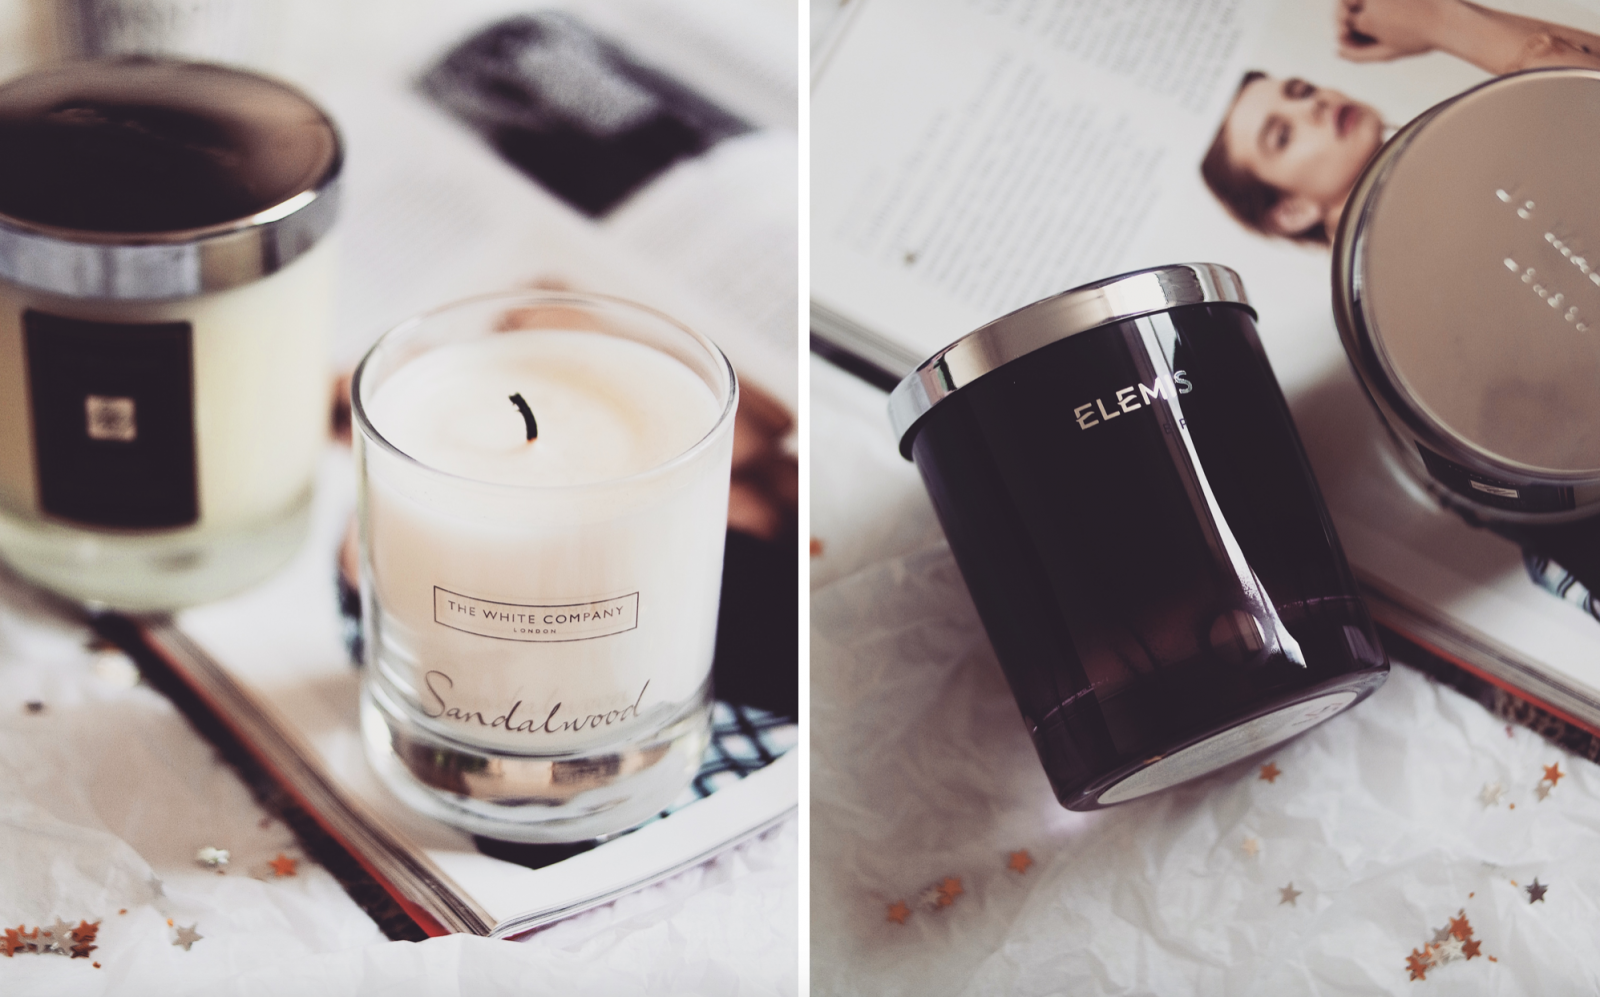 Gift guide for her - White Company Sandalwood